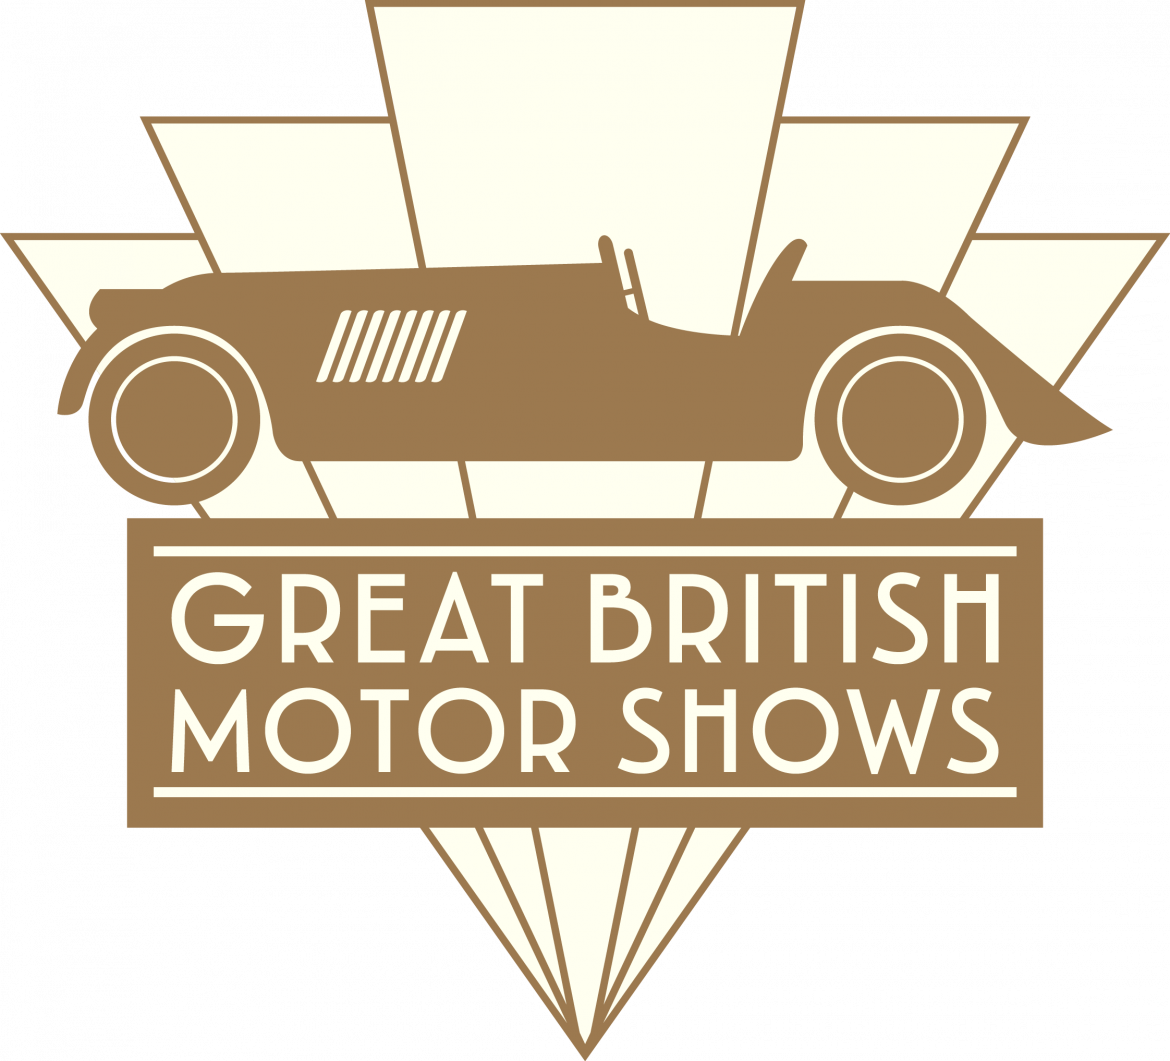 Great British Motor Shows